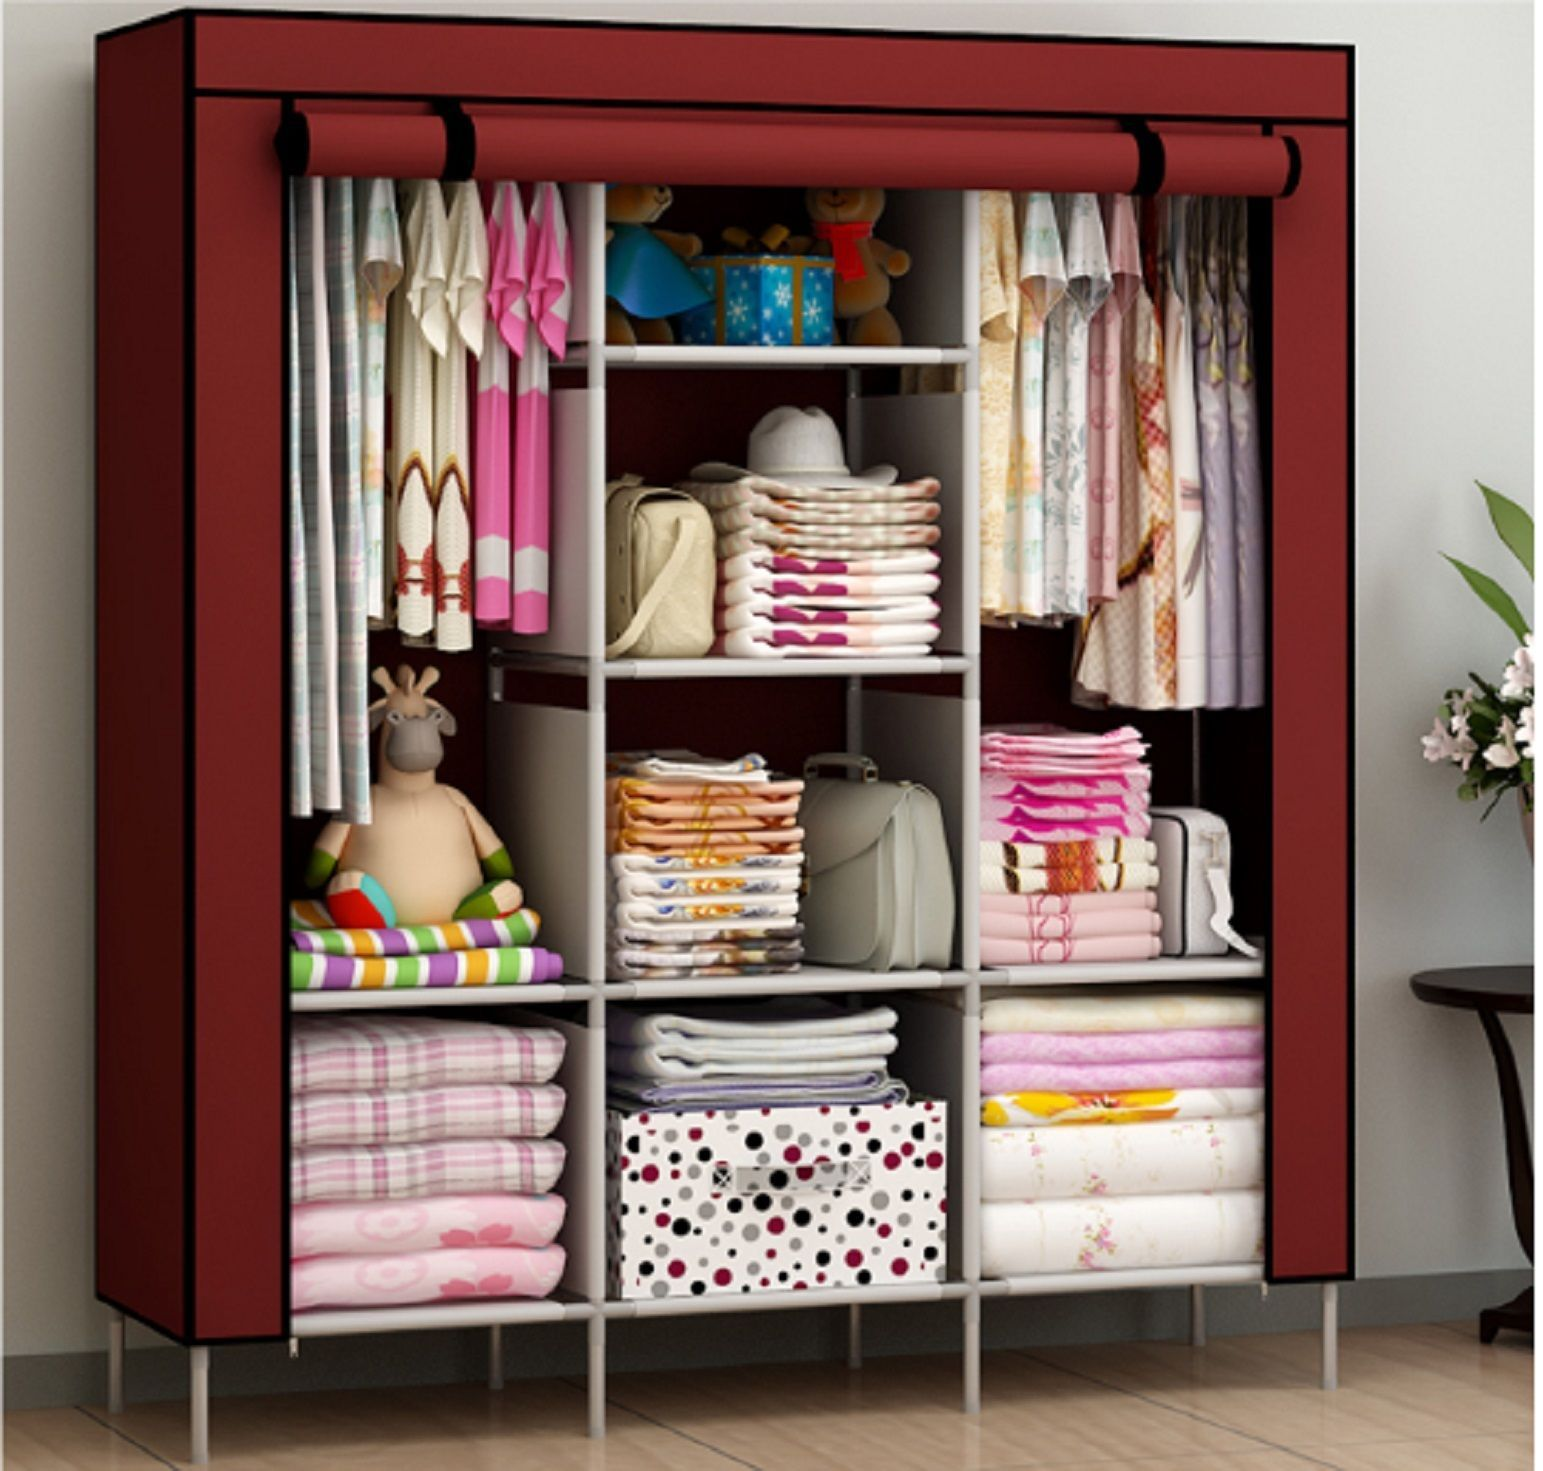 New Portable Bedroom Furniture Clothes Wardrobe Closet